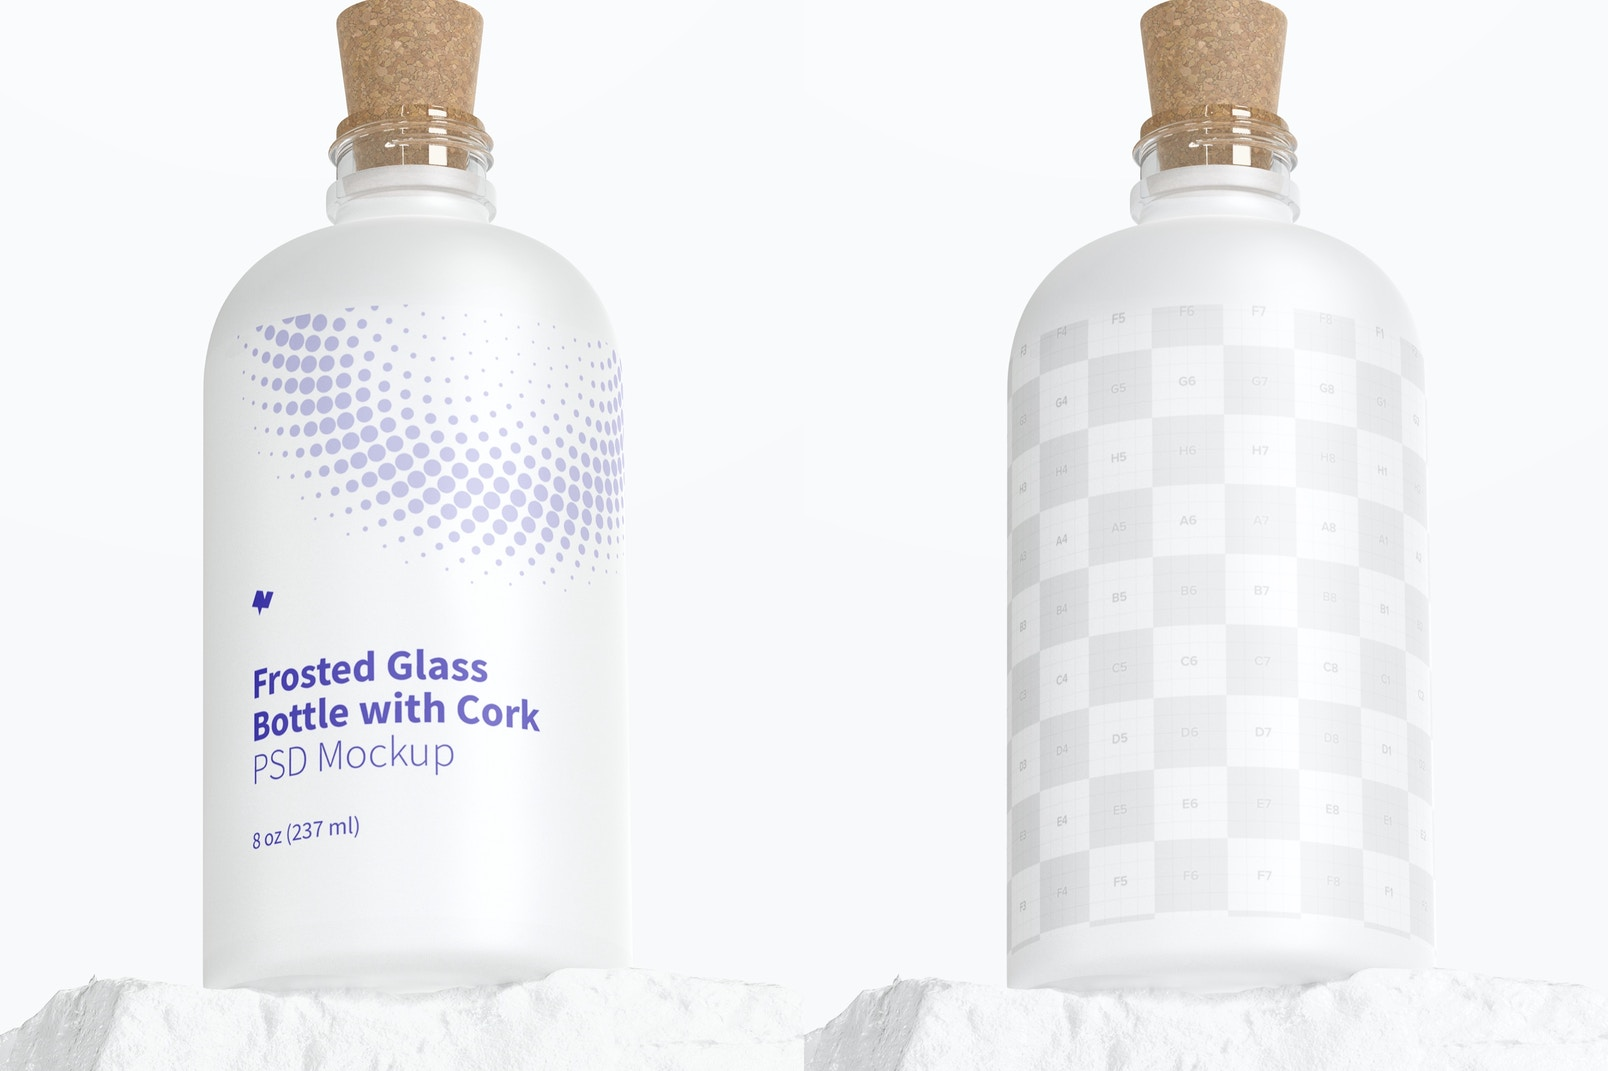 Frosted Glass Bottle with Cork Mockup, Low Angle View